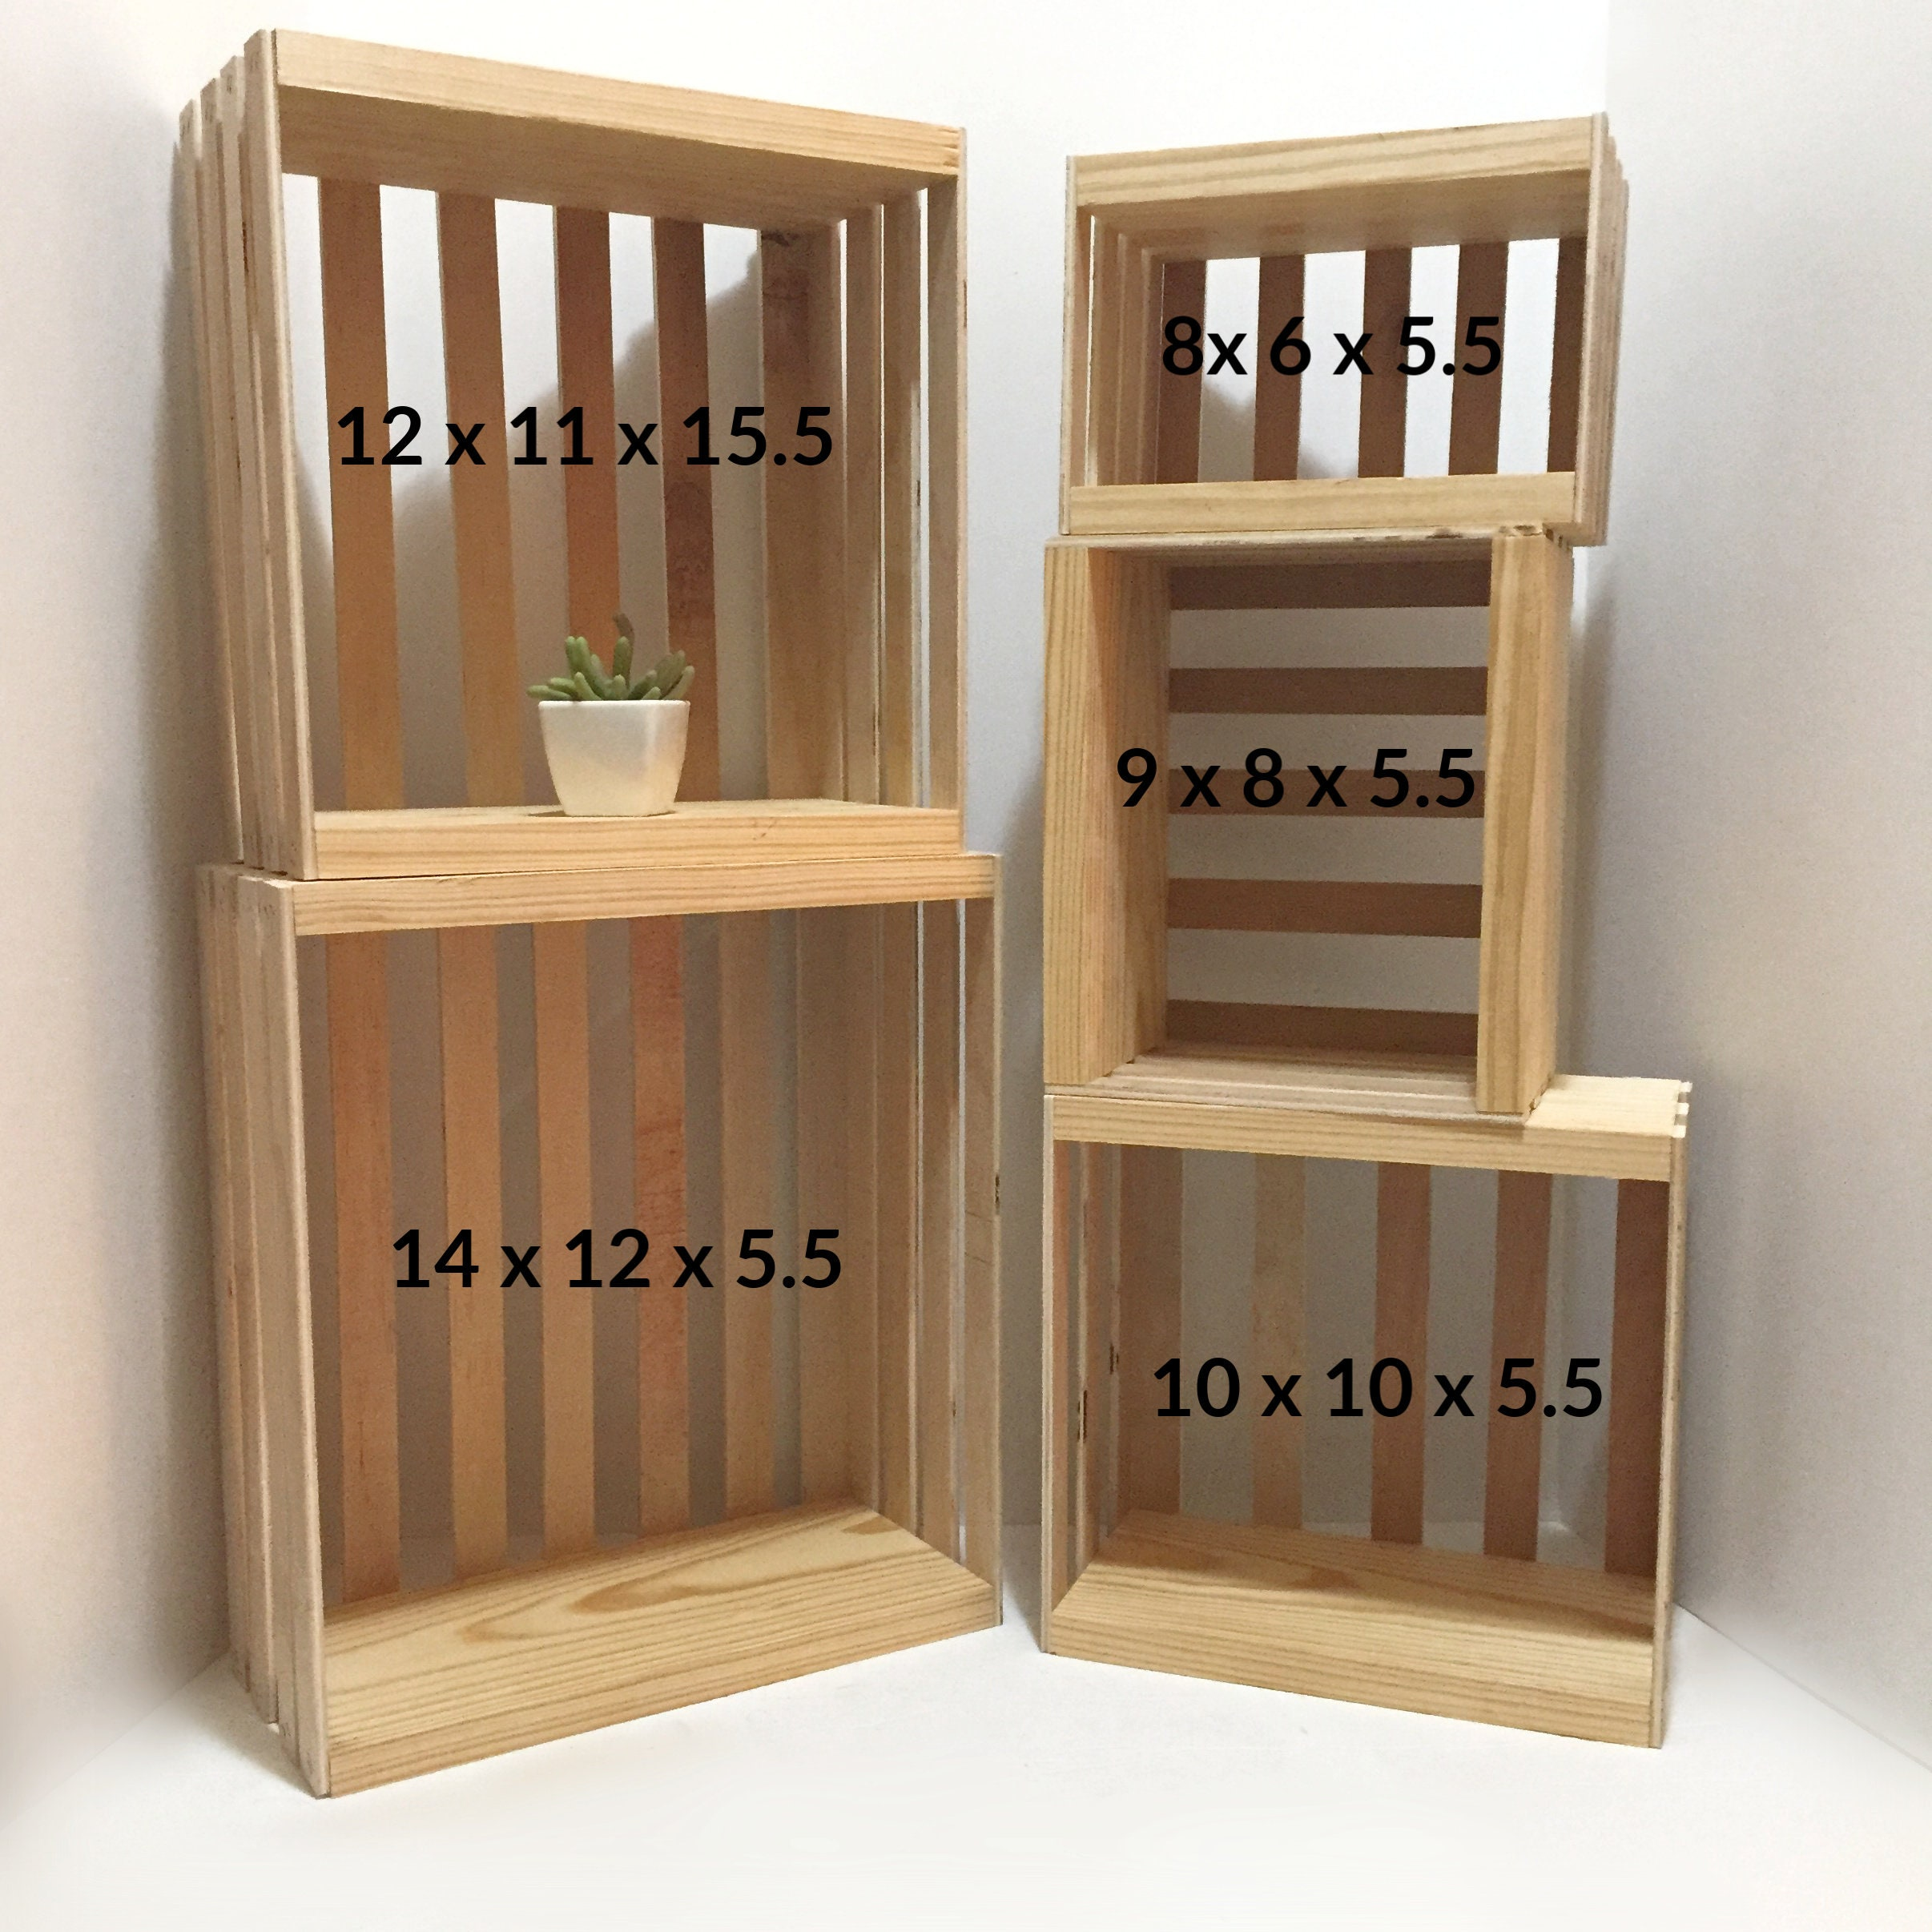 New! Nested Crates Set Of 5 Displays Shelves Shelving